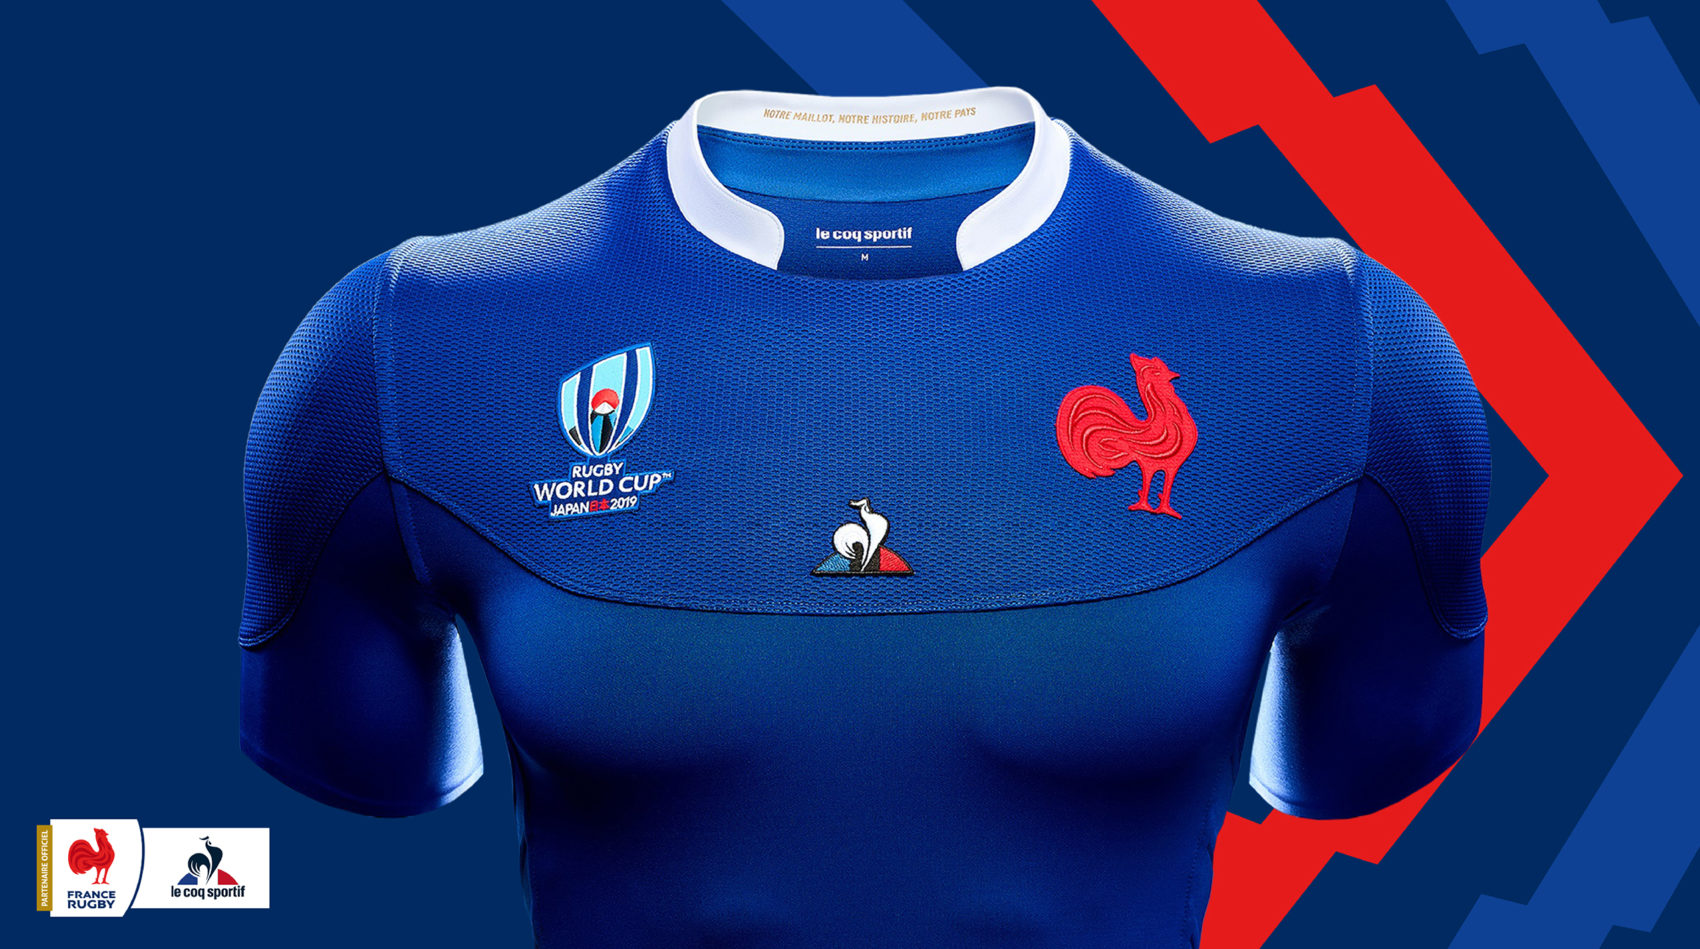 Projet_project_leroy_tremblot_FFR_federation_francaise_rugby_french_nouvelle_identite_new_identity_branding_maillot